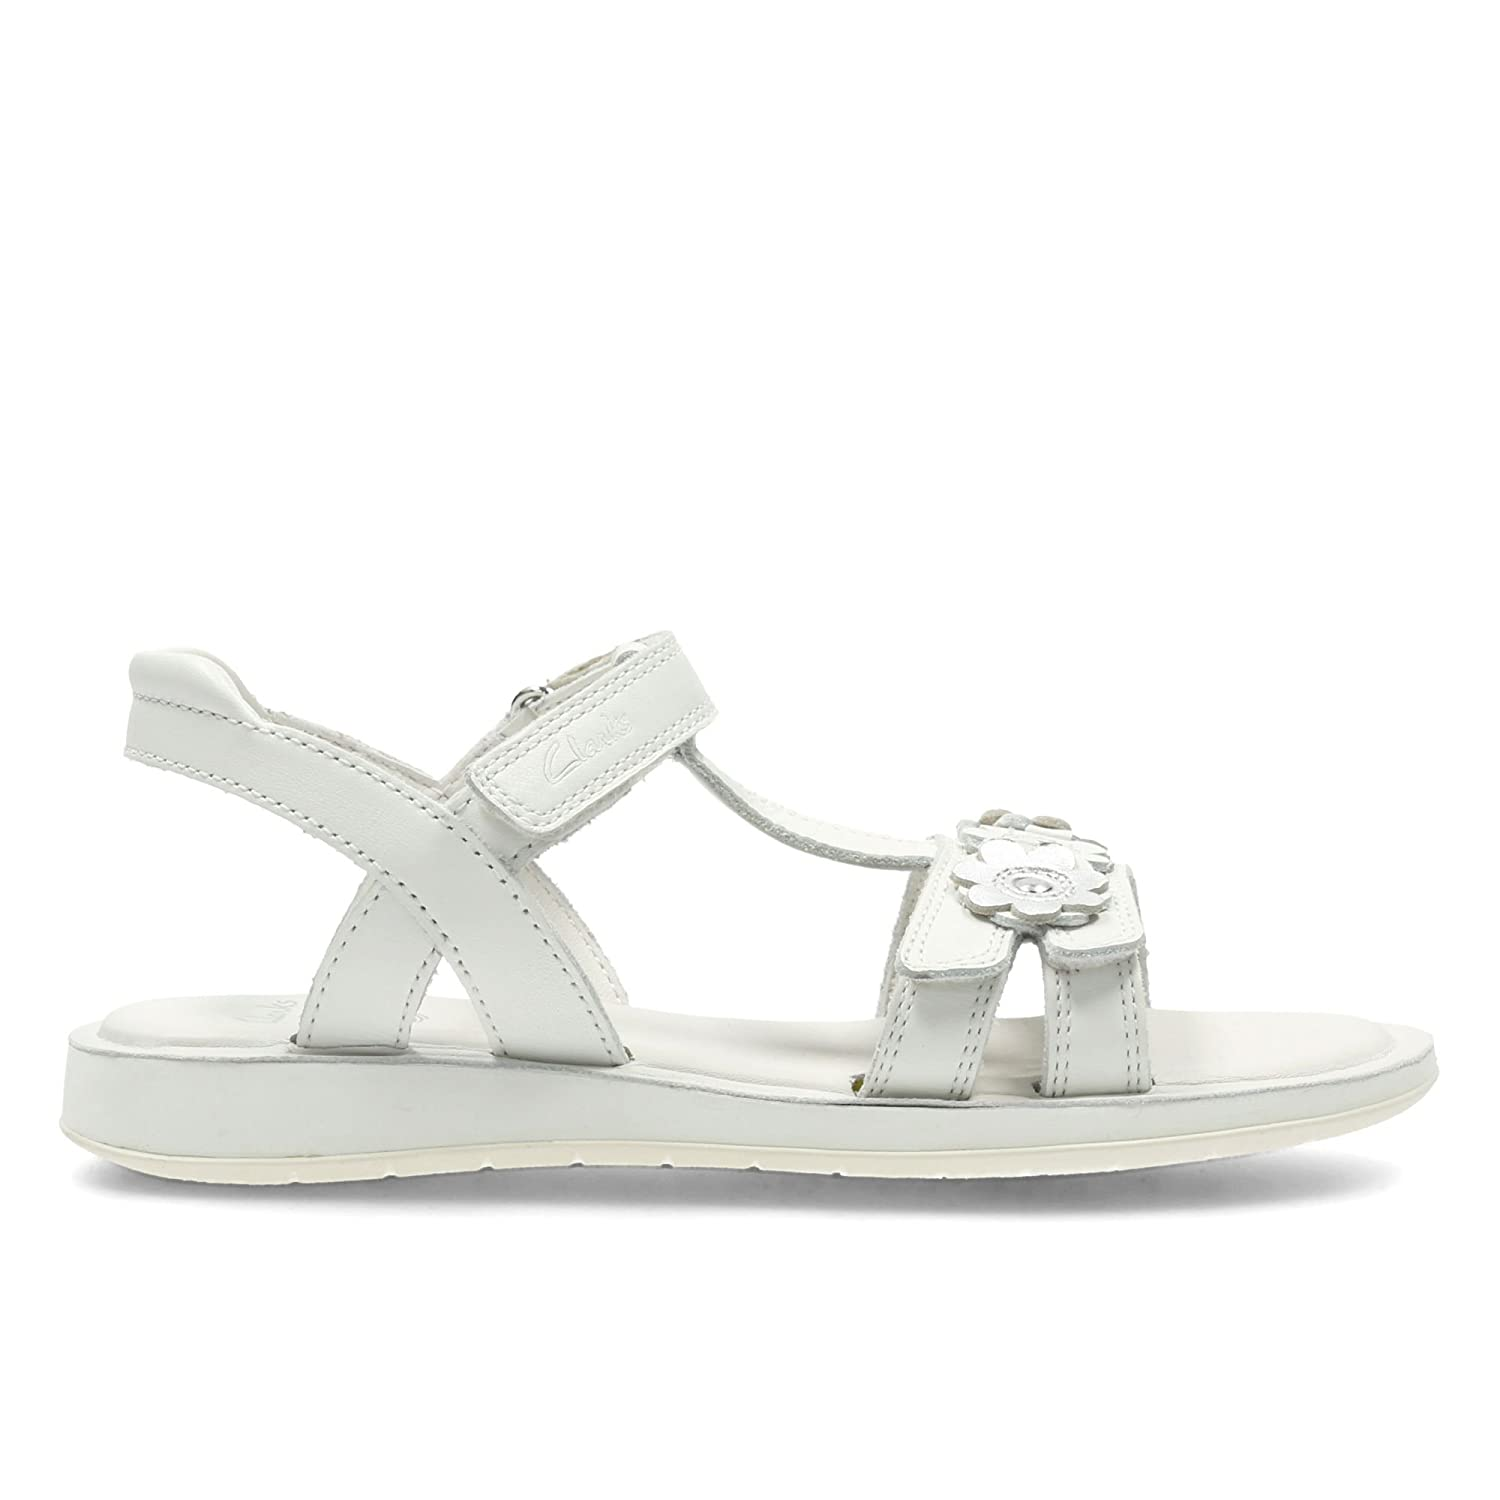 0073fb0da16 Clarks Girls Gladiator Style Sandals with Flower Detail Sea Sally - White  Leather - UK Size 13.5F - EU Size 32.5 - US Size 1M  Amazon.co.uk  Shoes    Bags